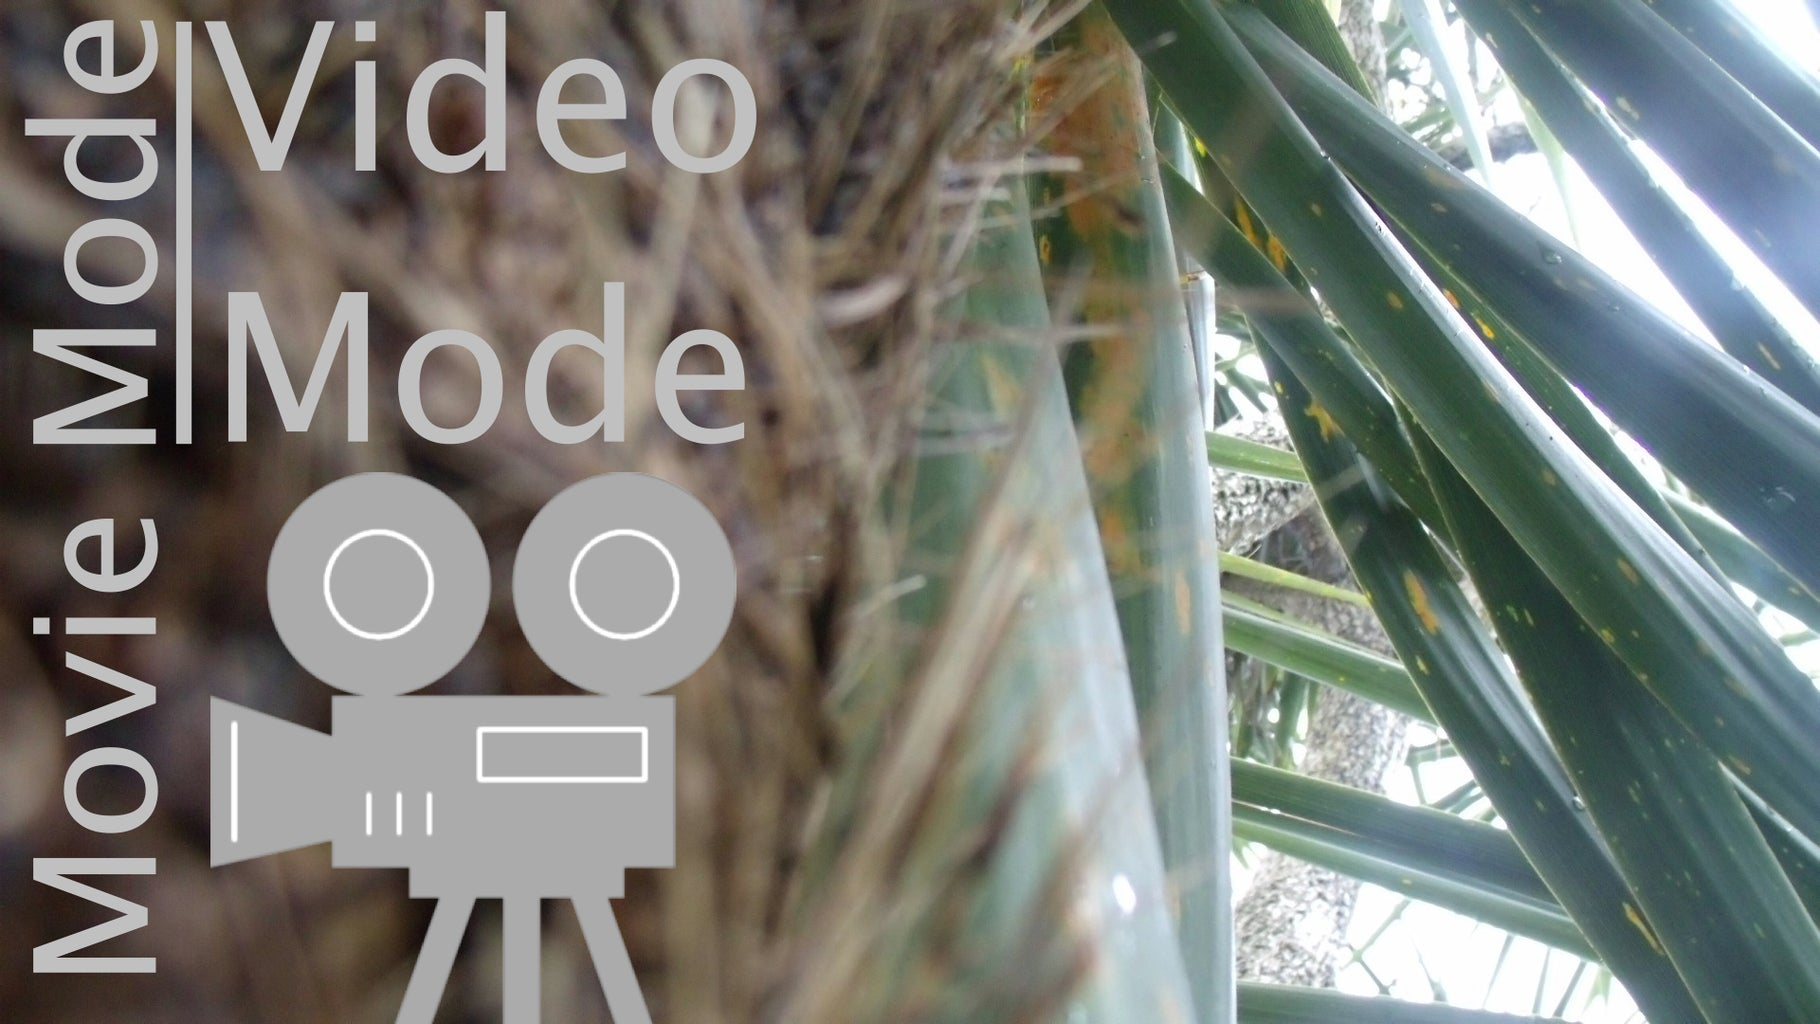 Digital Zoom and Movie/Video Mode